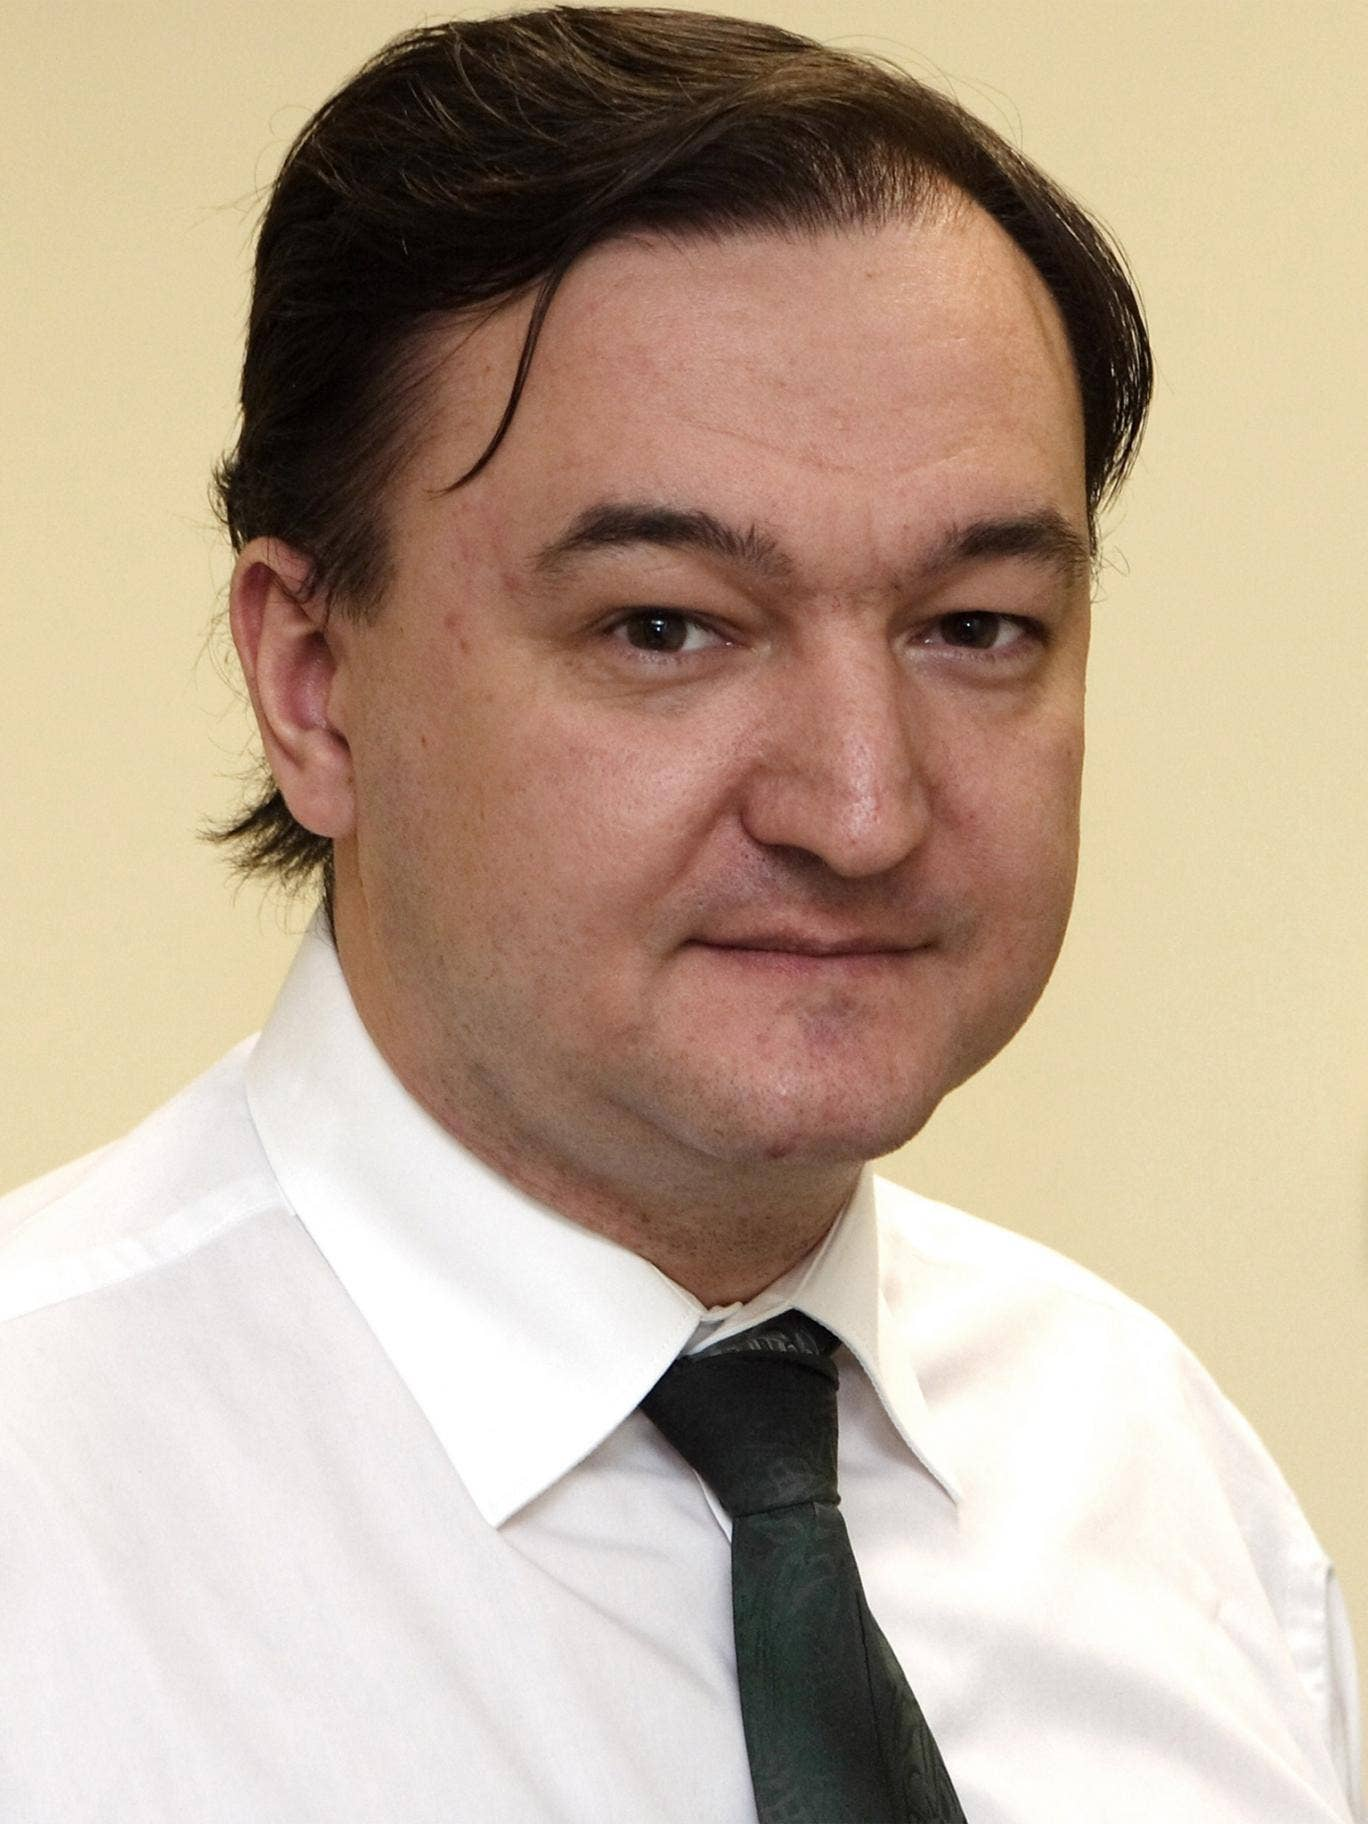 Sergei Magnitsky died in custody nine months after he was arrested